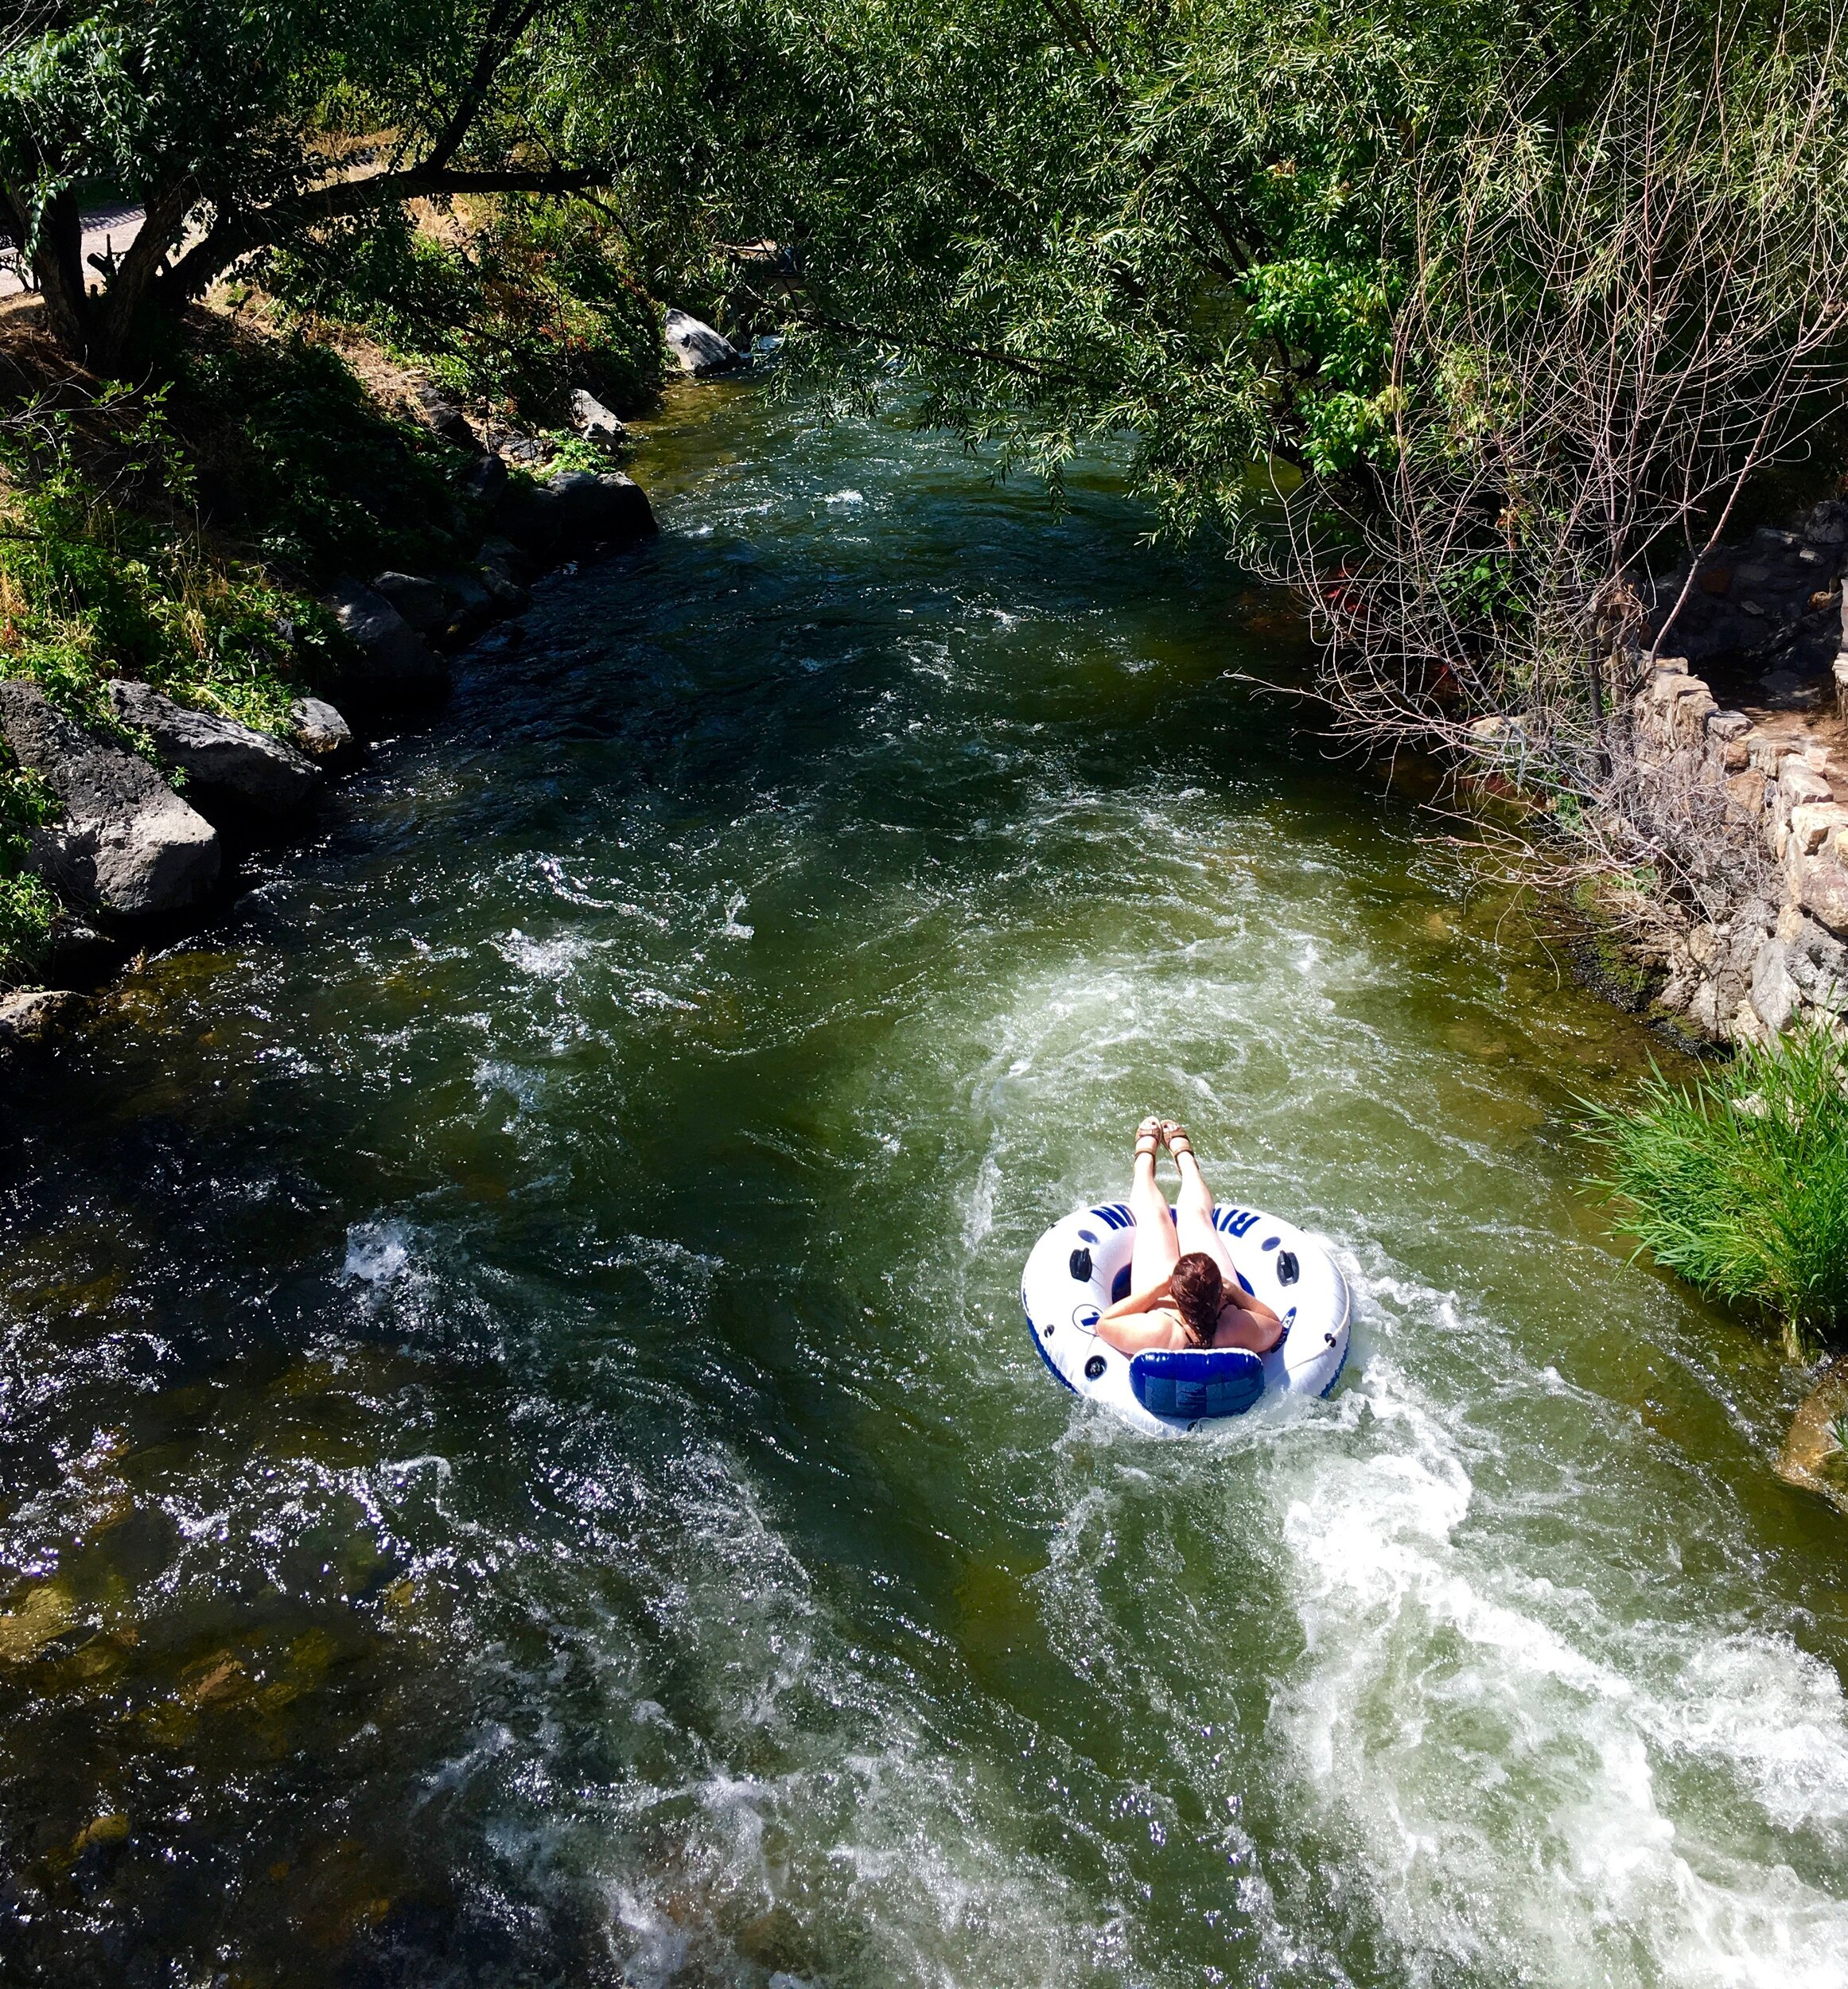 Float on a tube down the Portneuf River